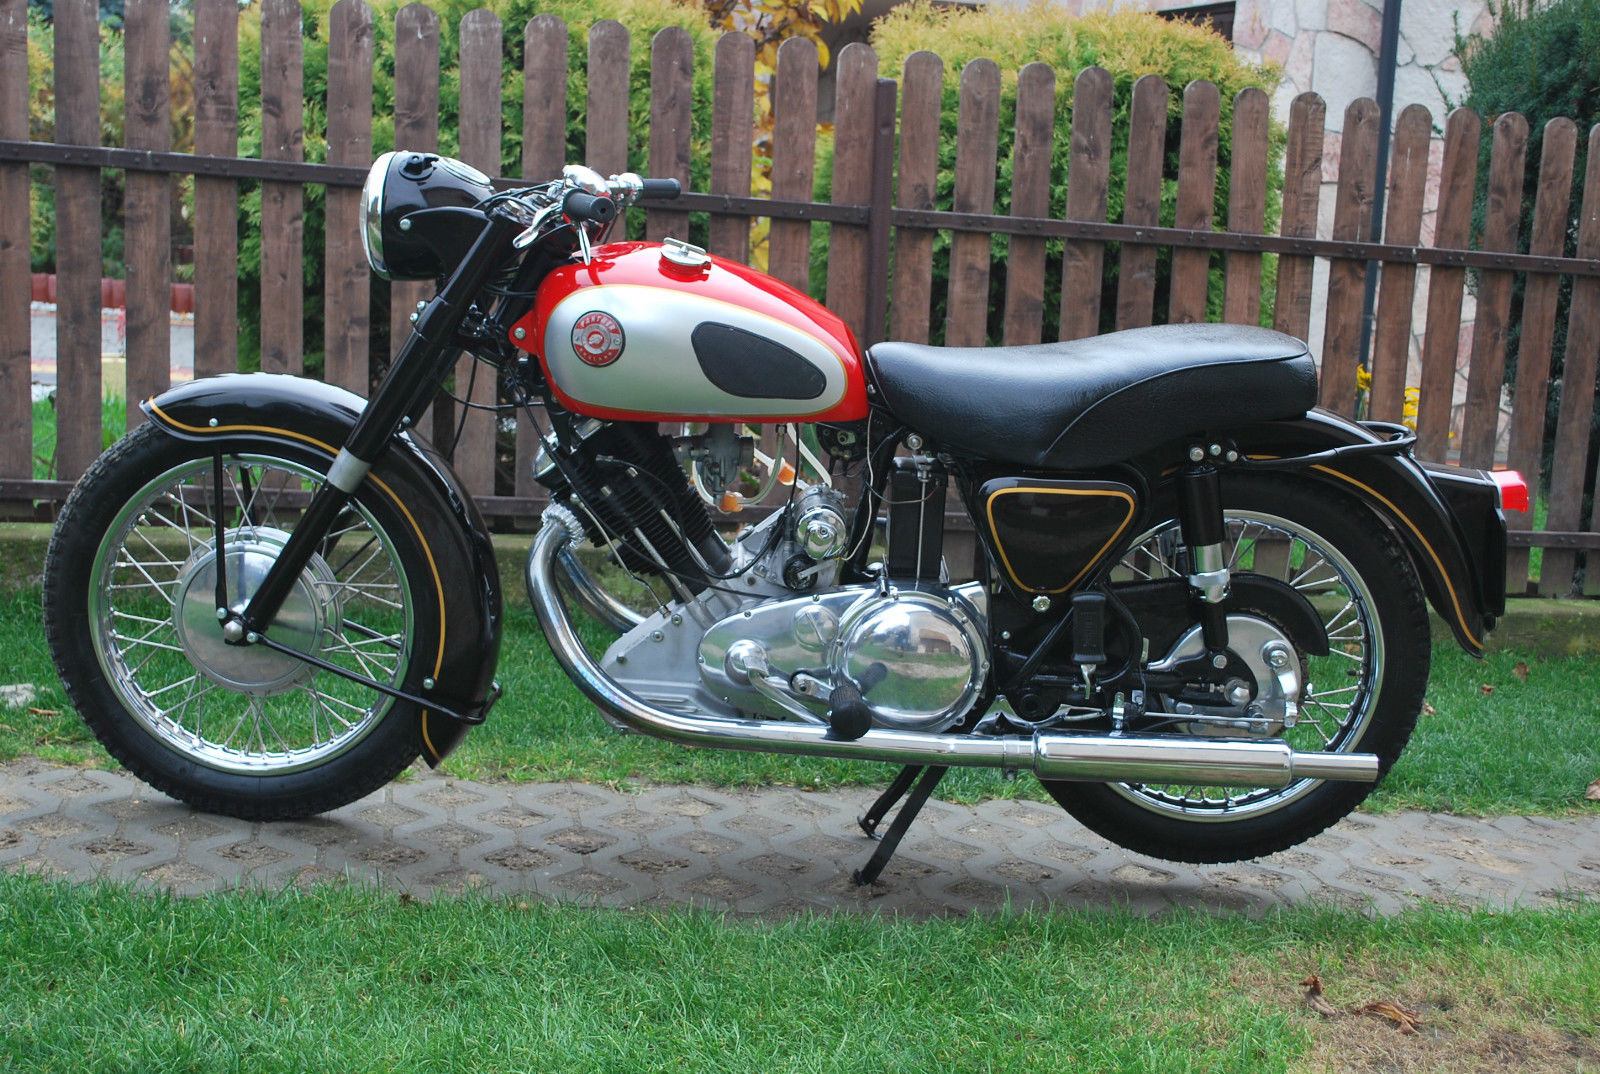 Panther M120 - 1959 - Restored Classic Motorcycles at Bikes